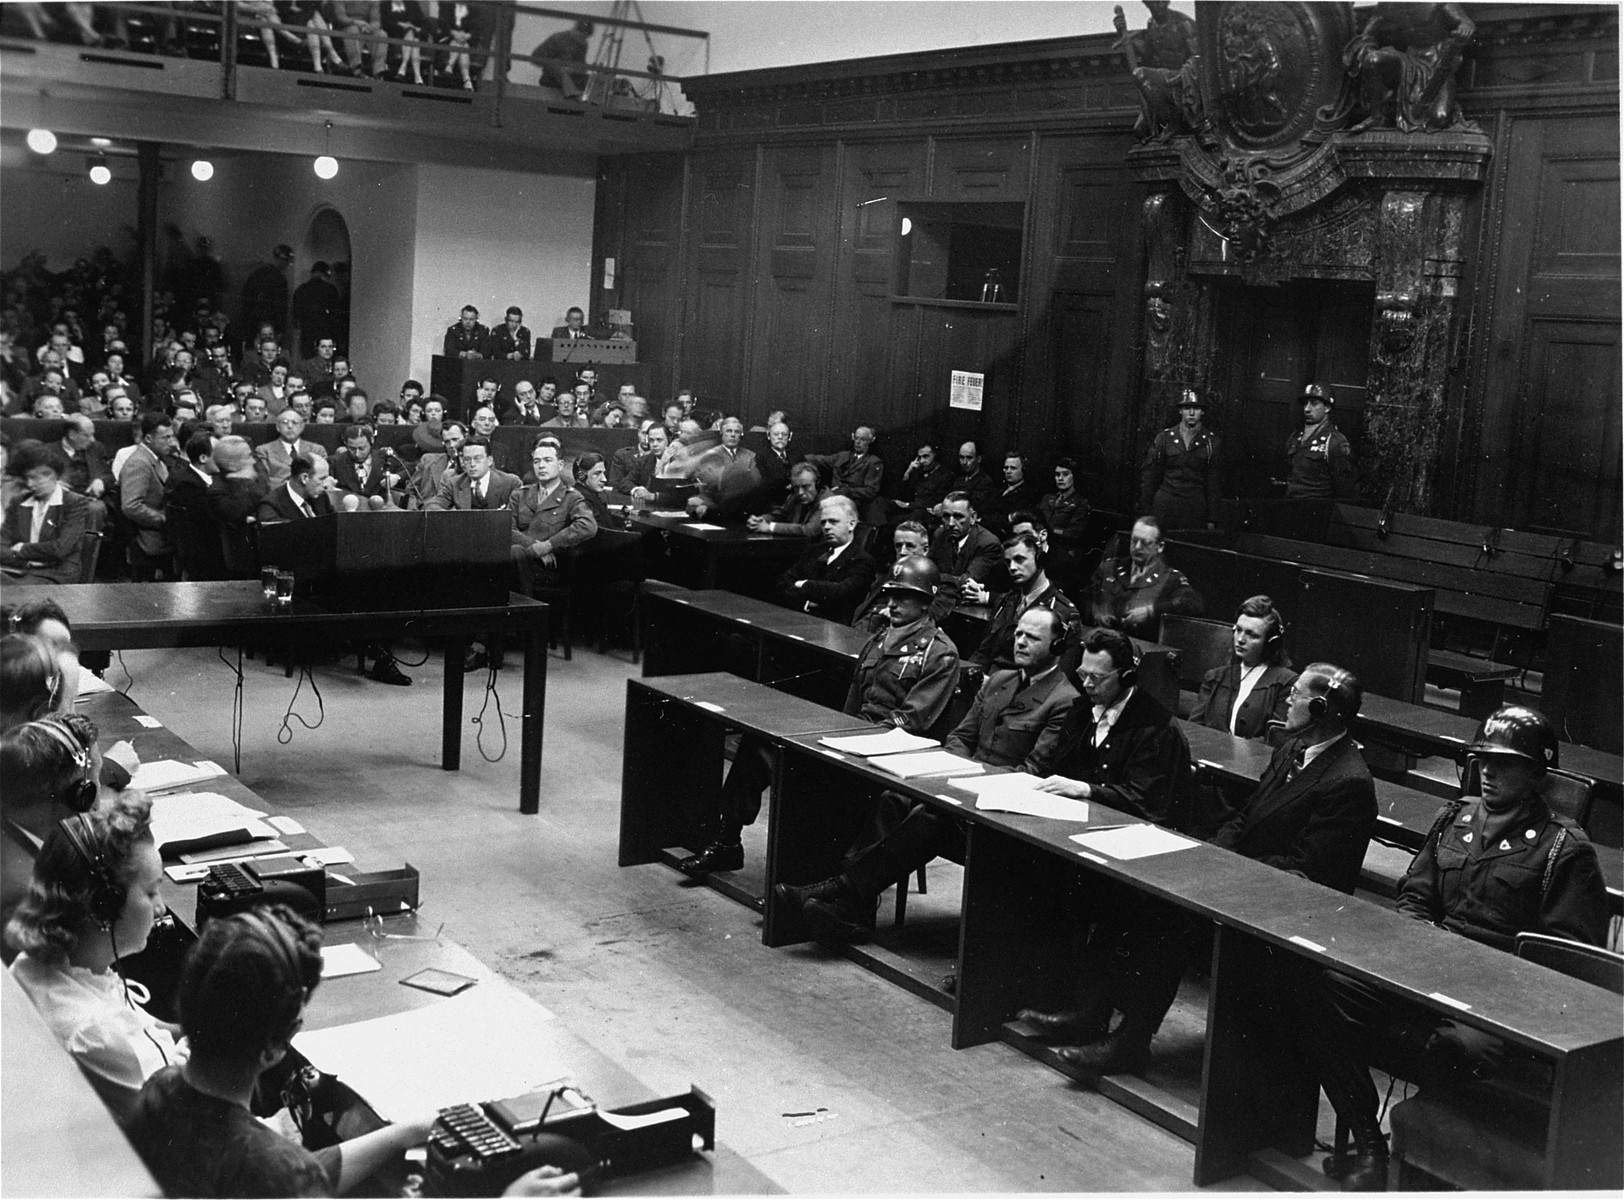 View of the courtroom during a session of the Milch Trial.  Former Field Marshal Erhard Milch is seated at the right in the front row, second from the left.  He is seated to the left of his two lawyers, Dr. Friedrich Bergold and Dr. Werner Milch.